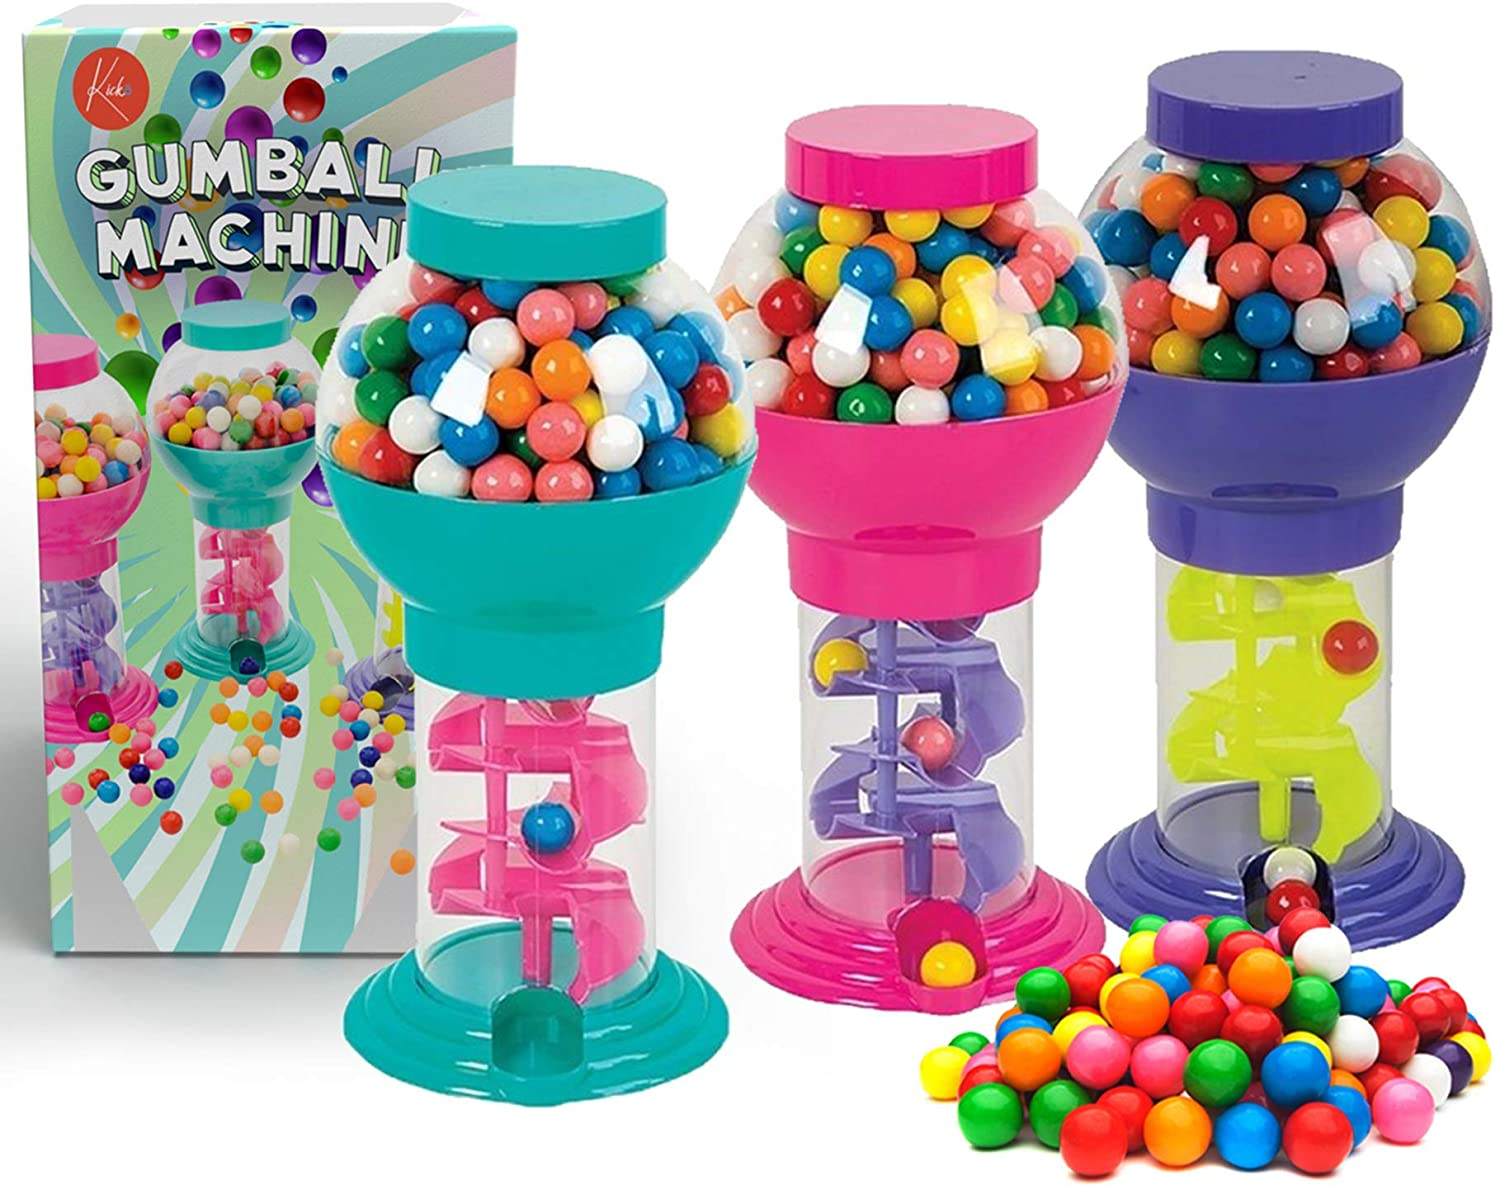 Kicko Twirling Gumball Machines - 3 Pack - 9.75 Inch - Galaxy Candy Dispenser - for Birthdays, Kiddie Parties, Christmas, Novelties, Kitchen Buffet, Party Favors and Supplies